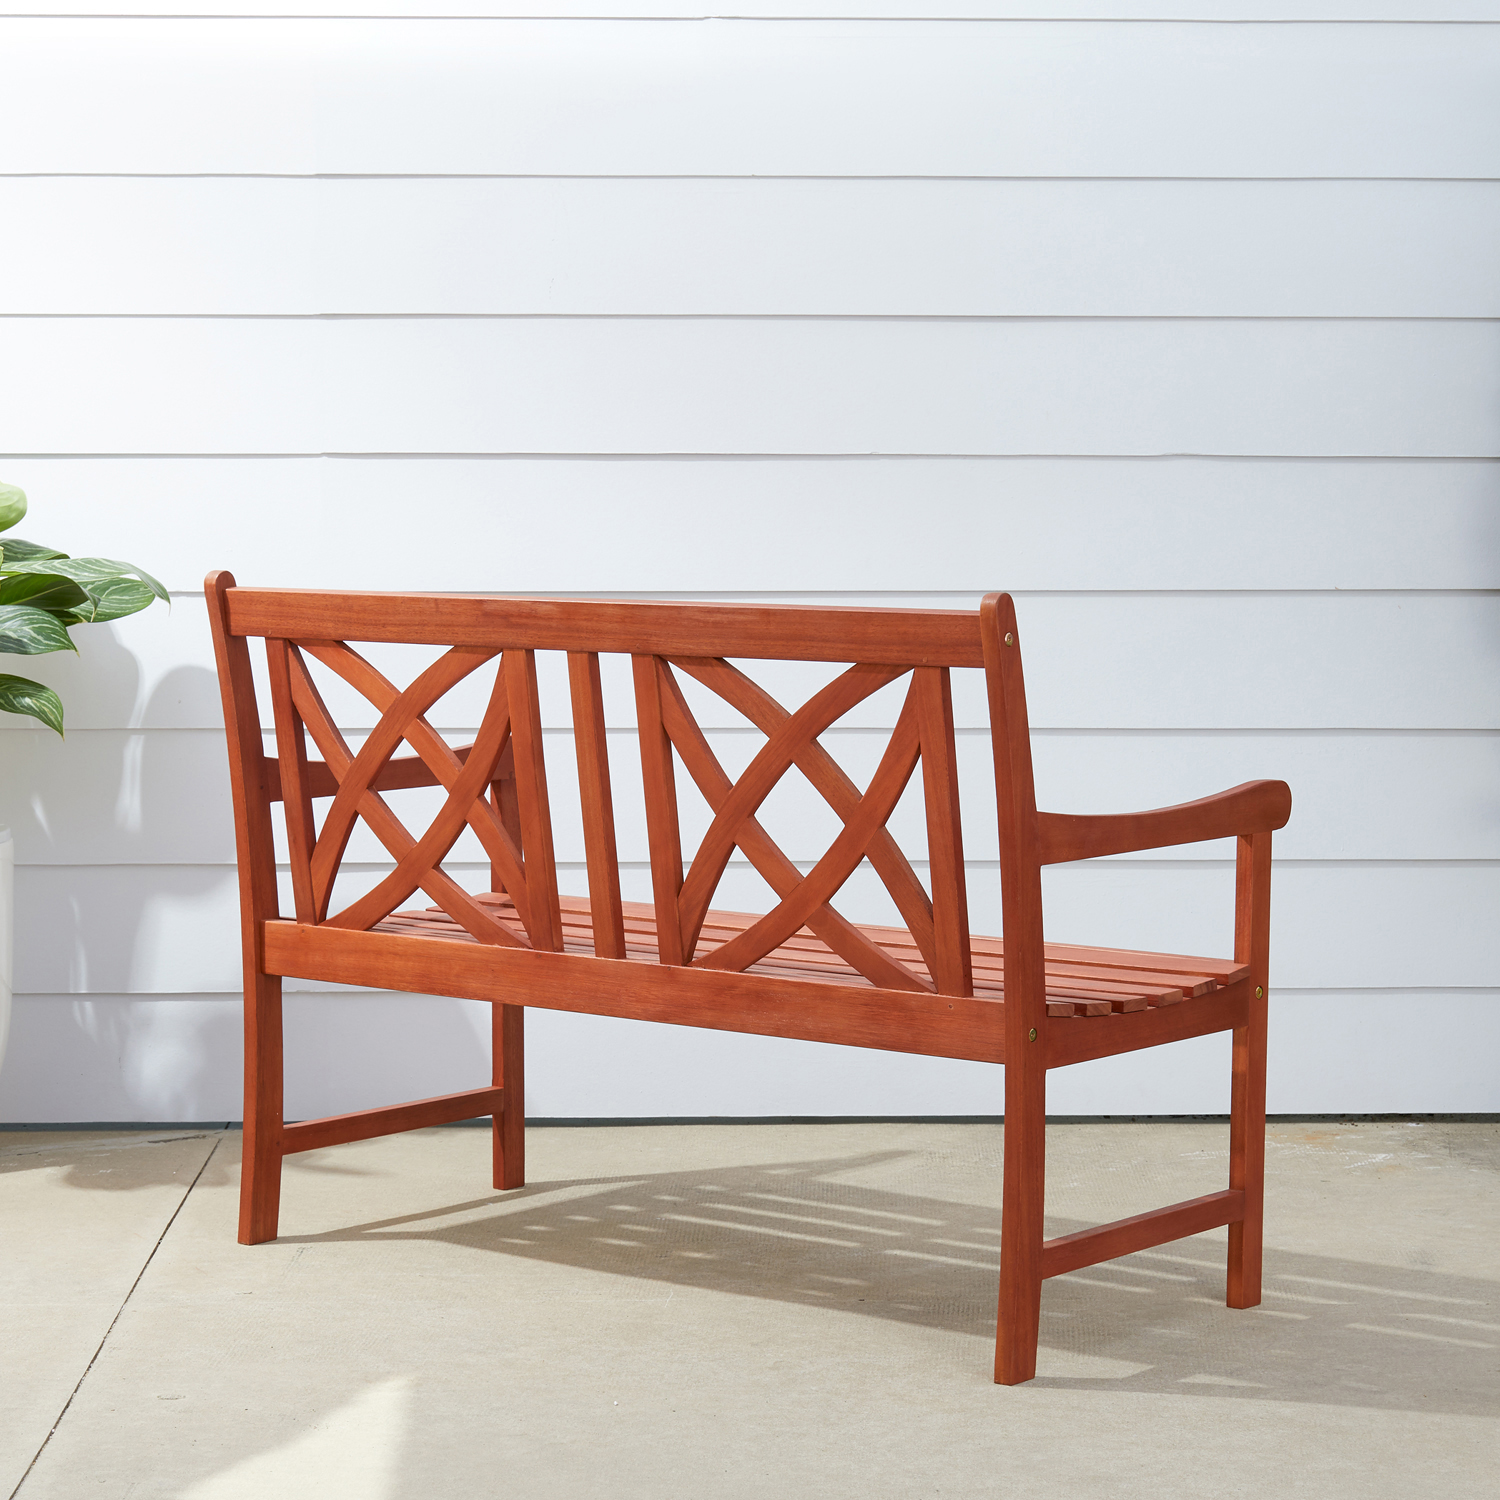 Malibu Brown 4' Flower Pattern Back Wood Garden Bench